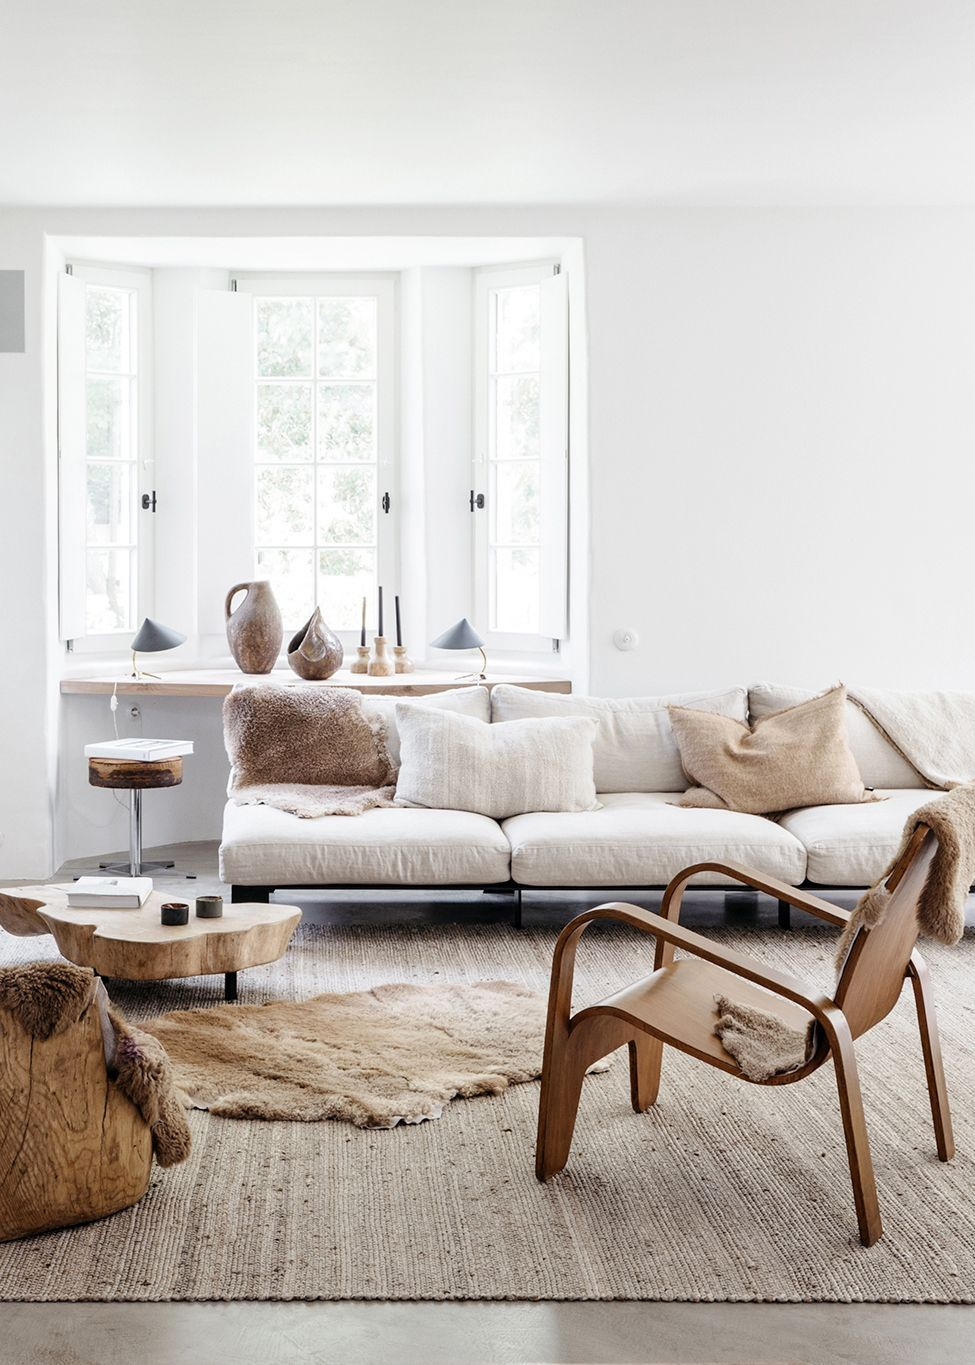 House Tour  This Belgian Home Is The Perfect Cozy, Clean Slate for Winter (coco kelley) is part of Neutral Living Room Tan - Welcome to 2019, you guys!!! And thank you for sticking with me while I took a much needed break from the blog, emails, and even a bit less social media over the holidays  I forget how that quiet time